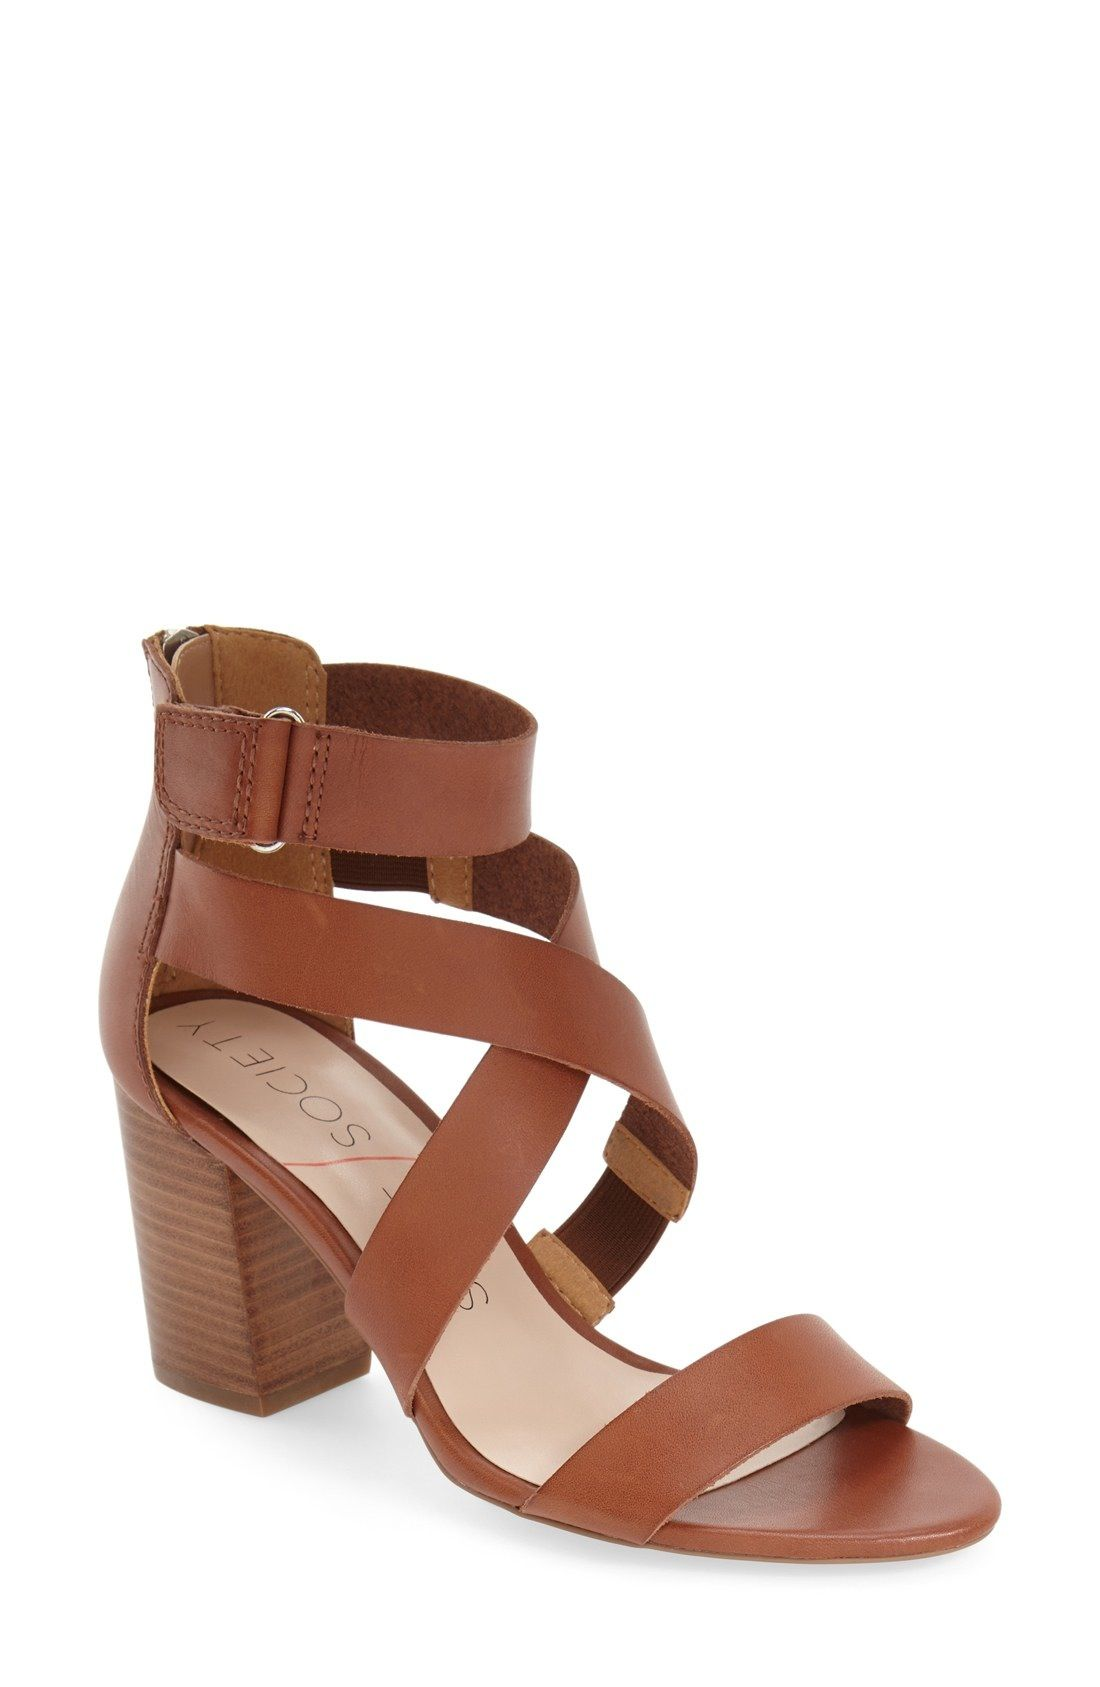 a7d1c5c8531 Sole Society  Sabina  Block Heel Sandal (Women) available at  Nordstrom